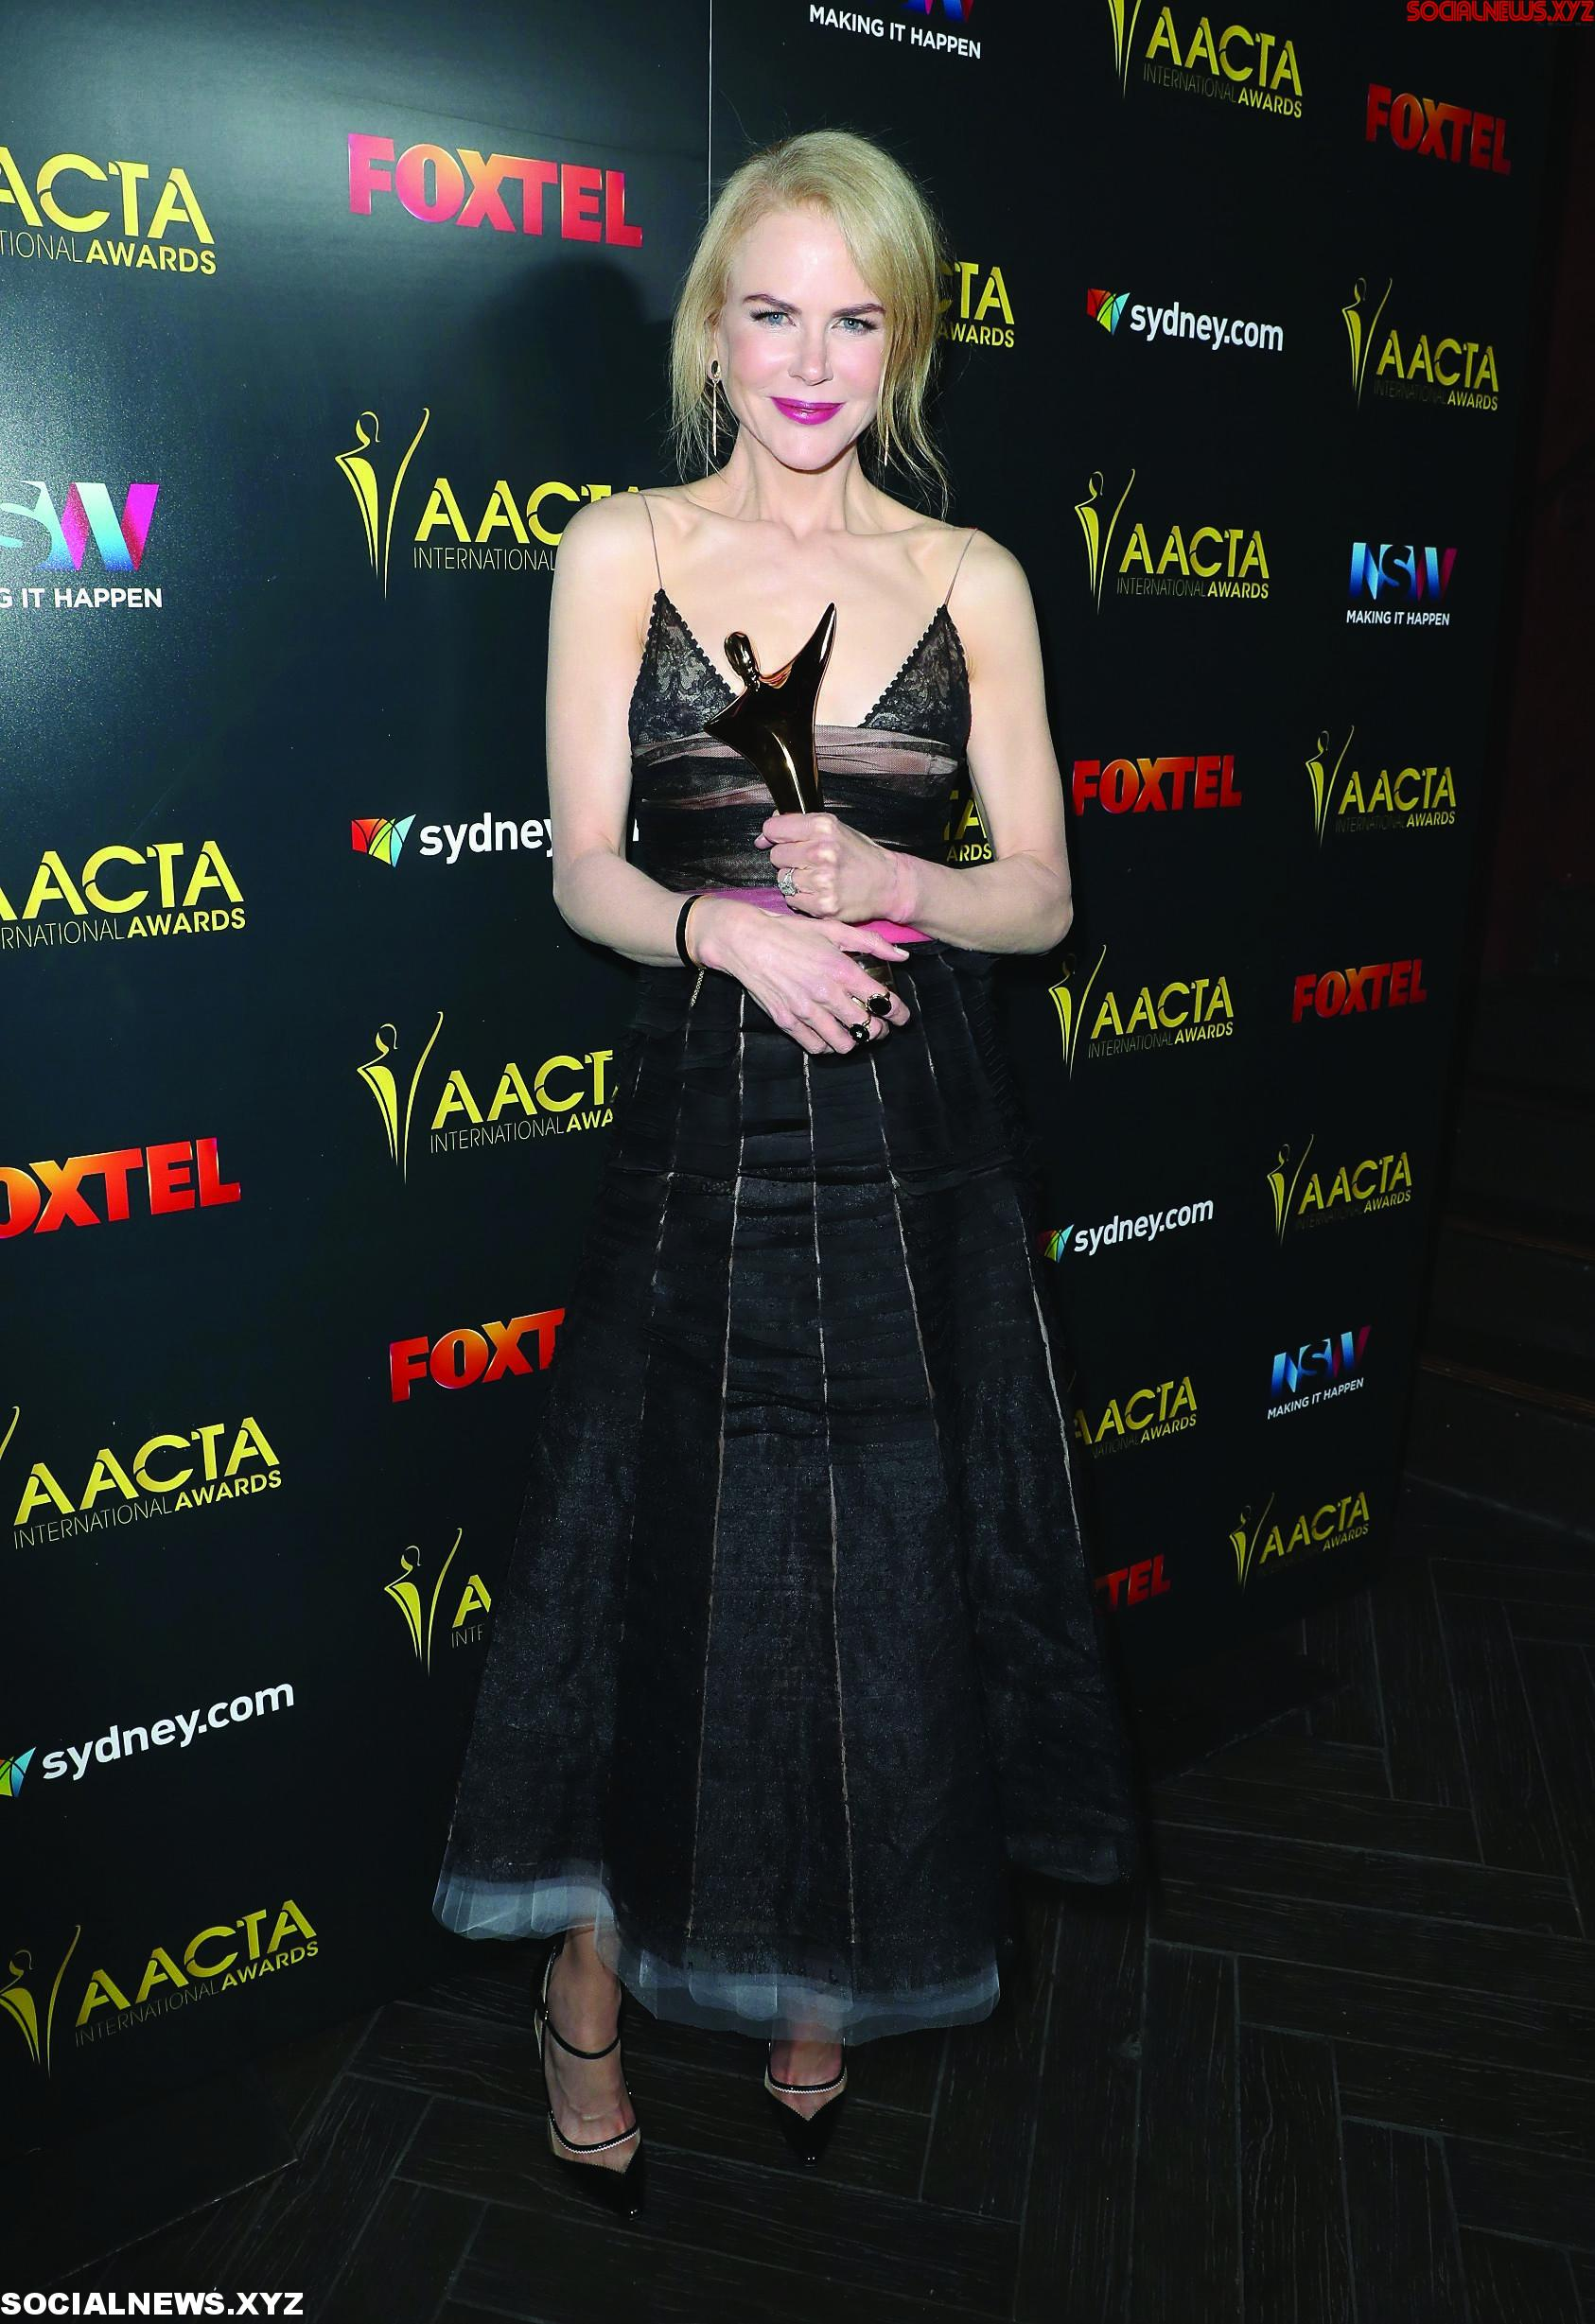 6th ACCTA International Awards Media Room Gallery